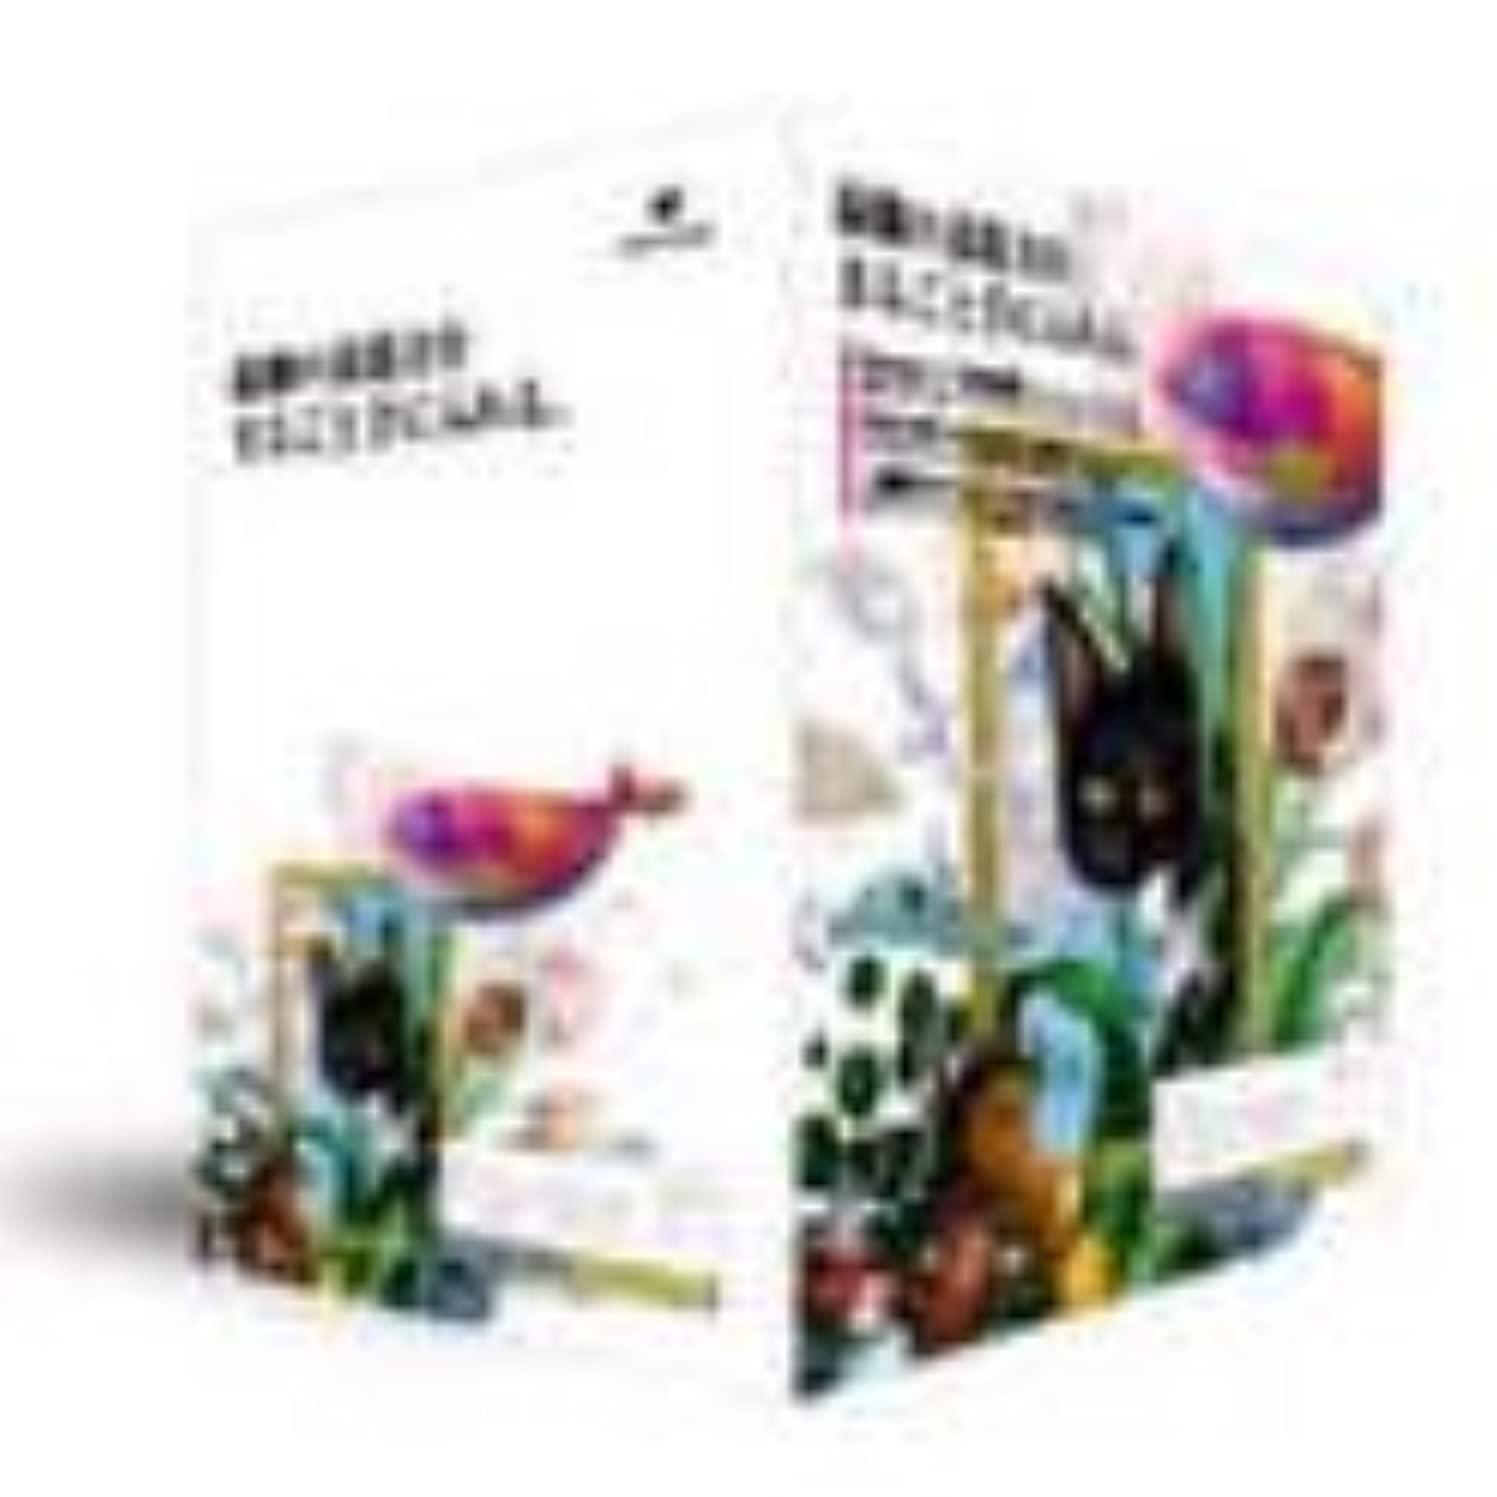 天才書き出すストライドPainter 7 STARTUP COLLECTION Macintosh版